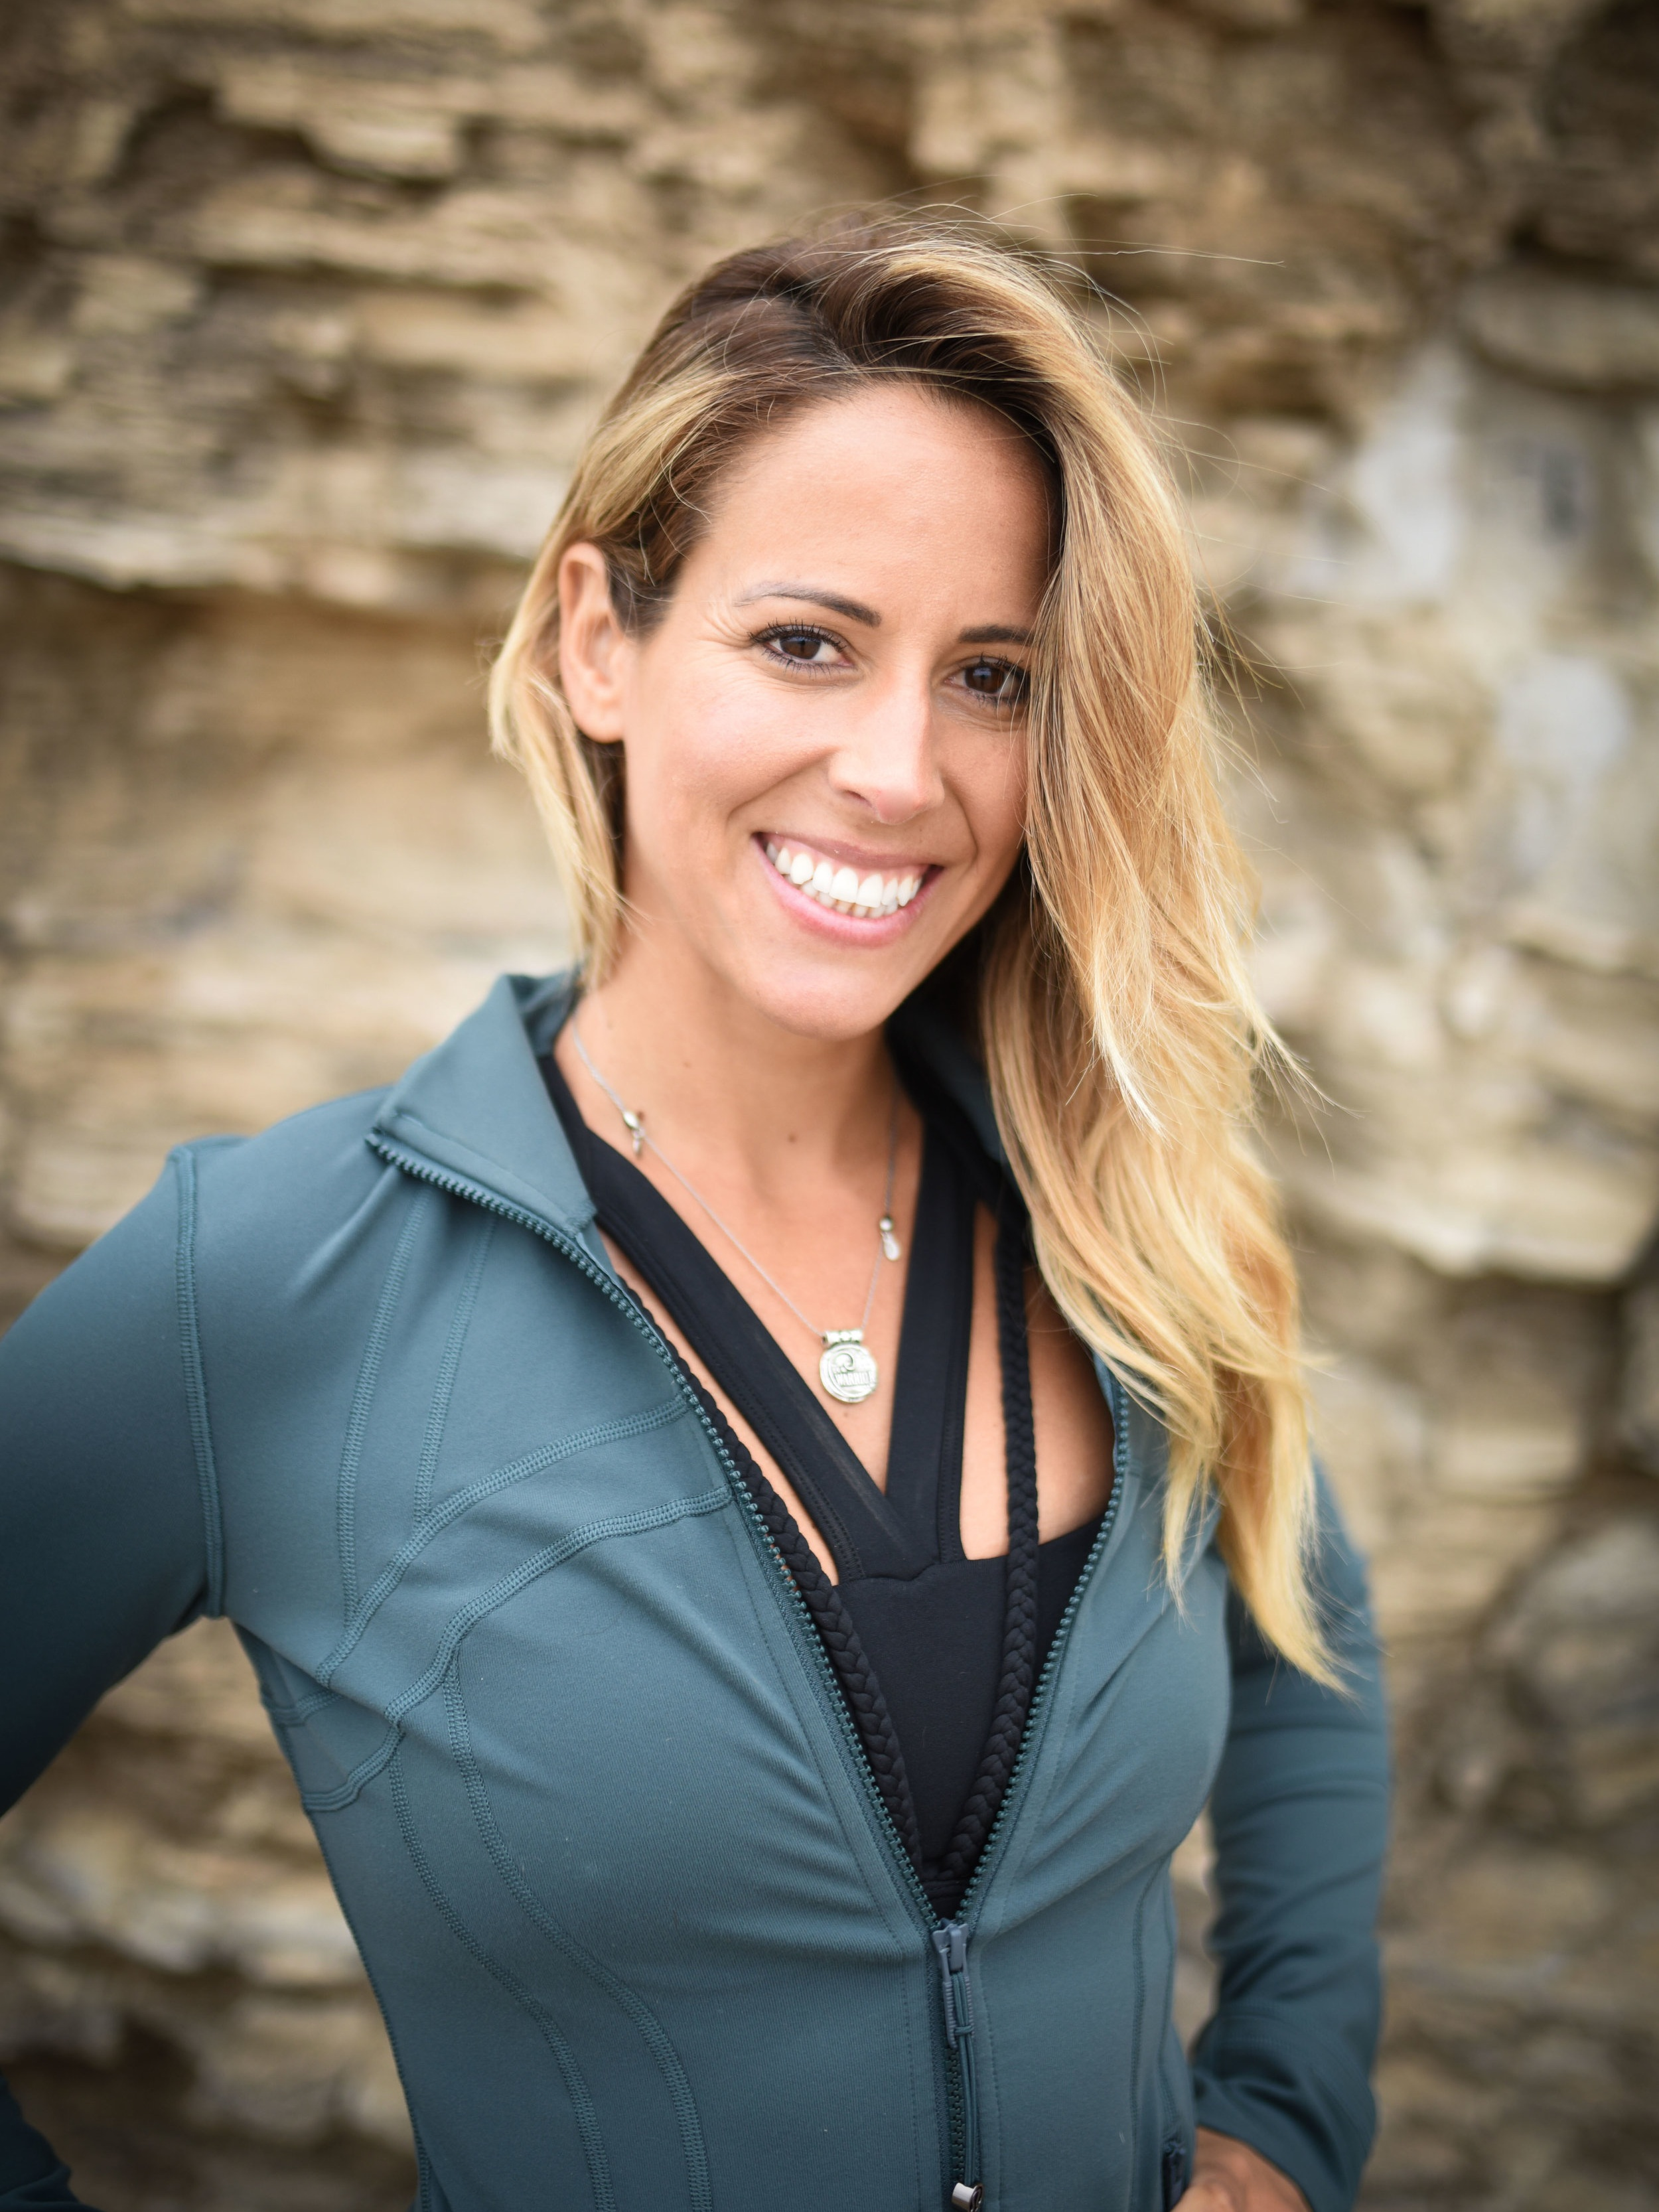 LINDSAY DE AGUILA | CREATOR OF TRANSFORMATIONAL EXPERIENCES & SELF-EMPOWERMENT MENTOR